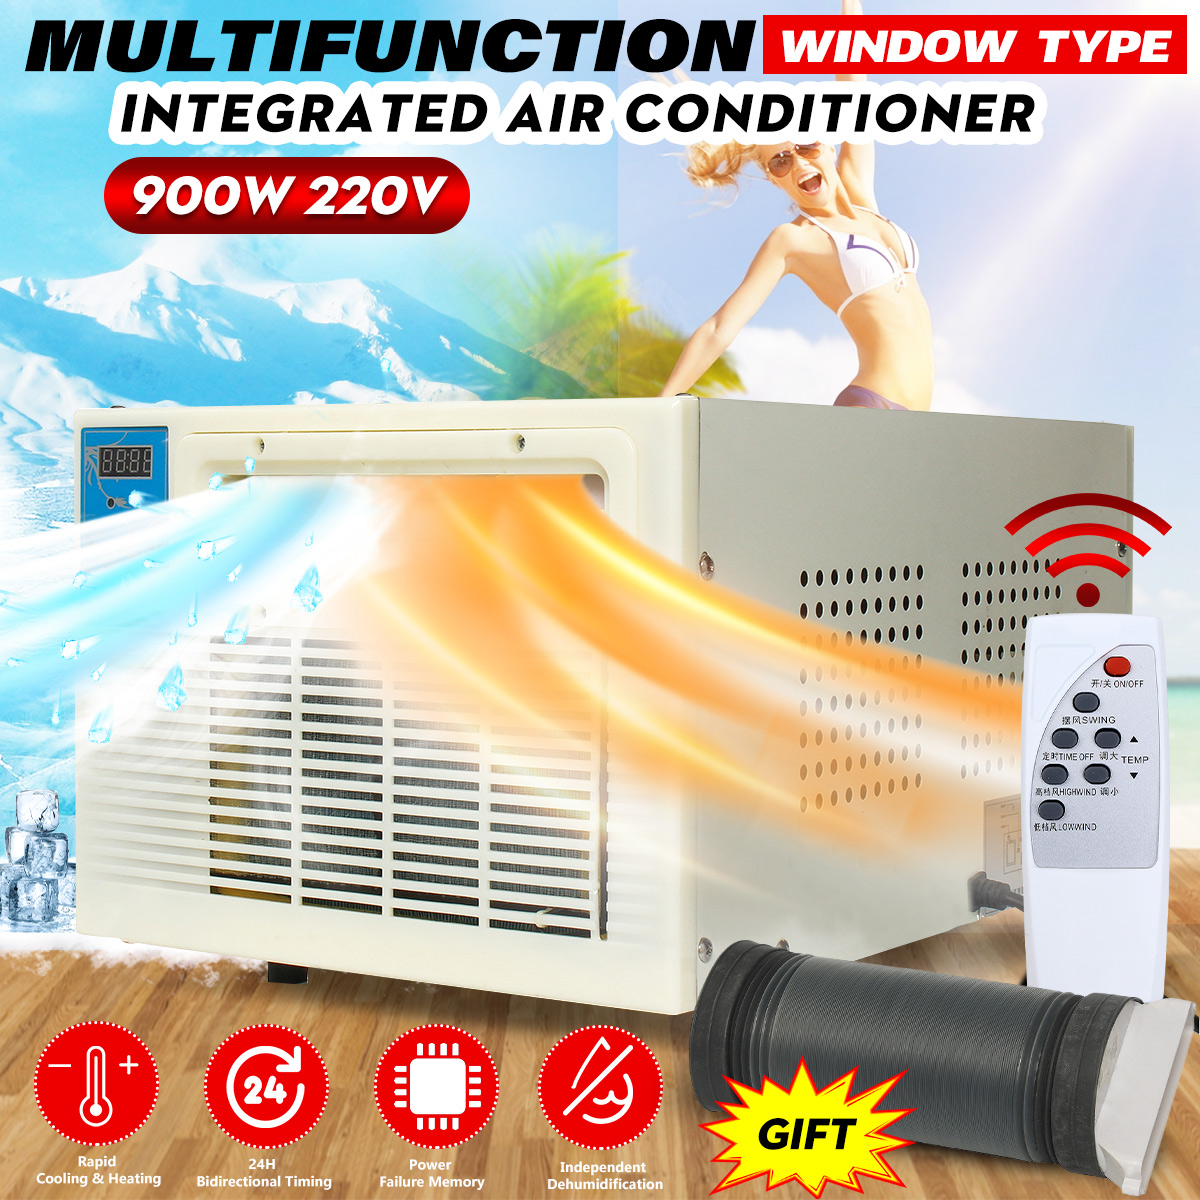 New Arrival 2019 600W Portable Air Conditioner Window Portable Air Conditioner Heater Cooling Cooler Cold/Heat 220V Dehumidifier